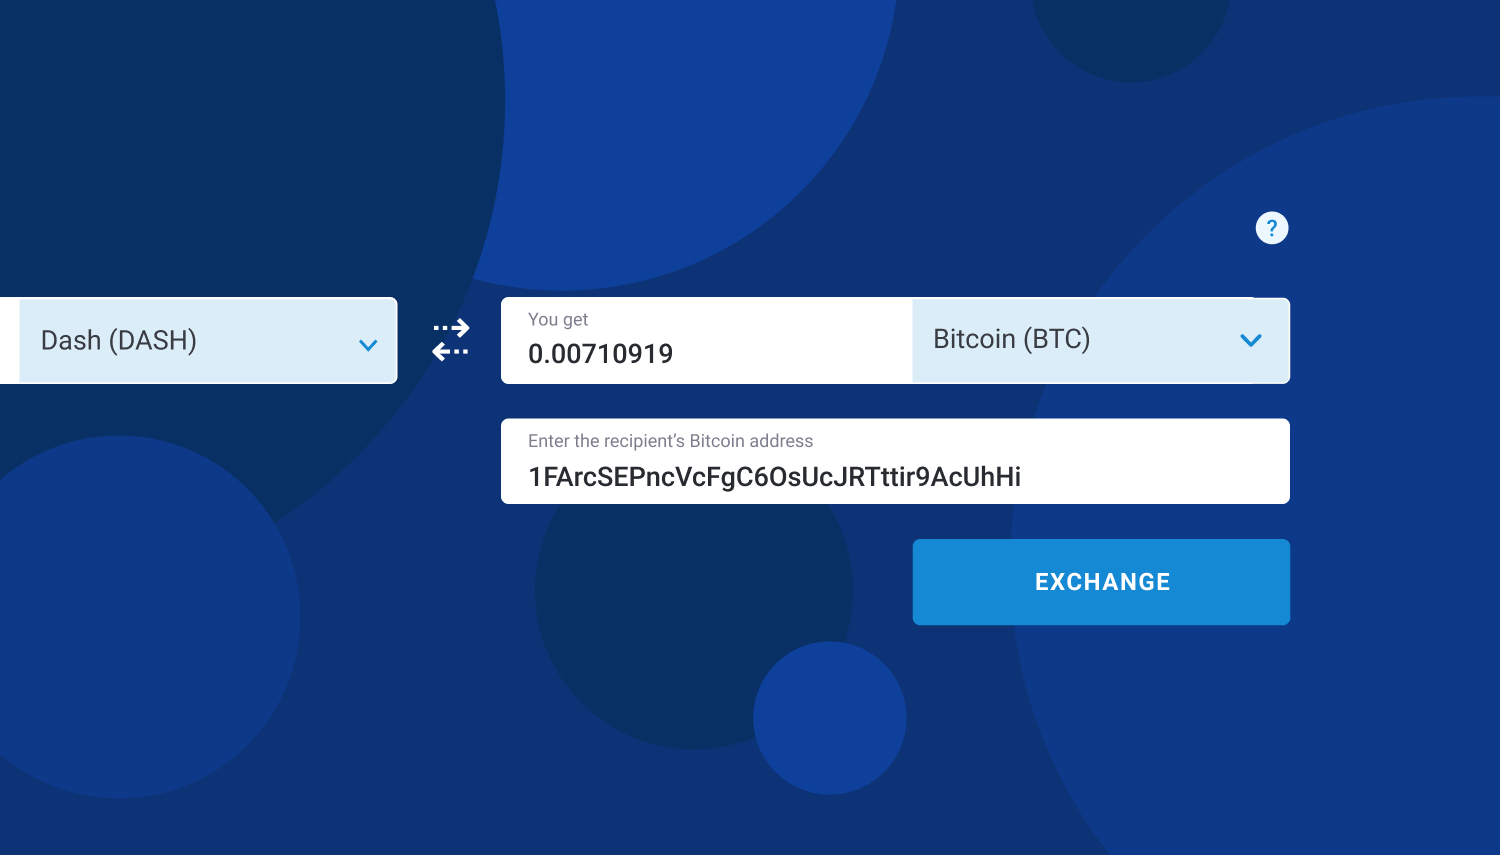 enter the recipient's Bitcoin address